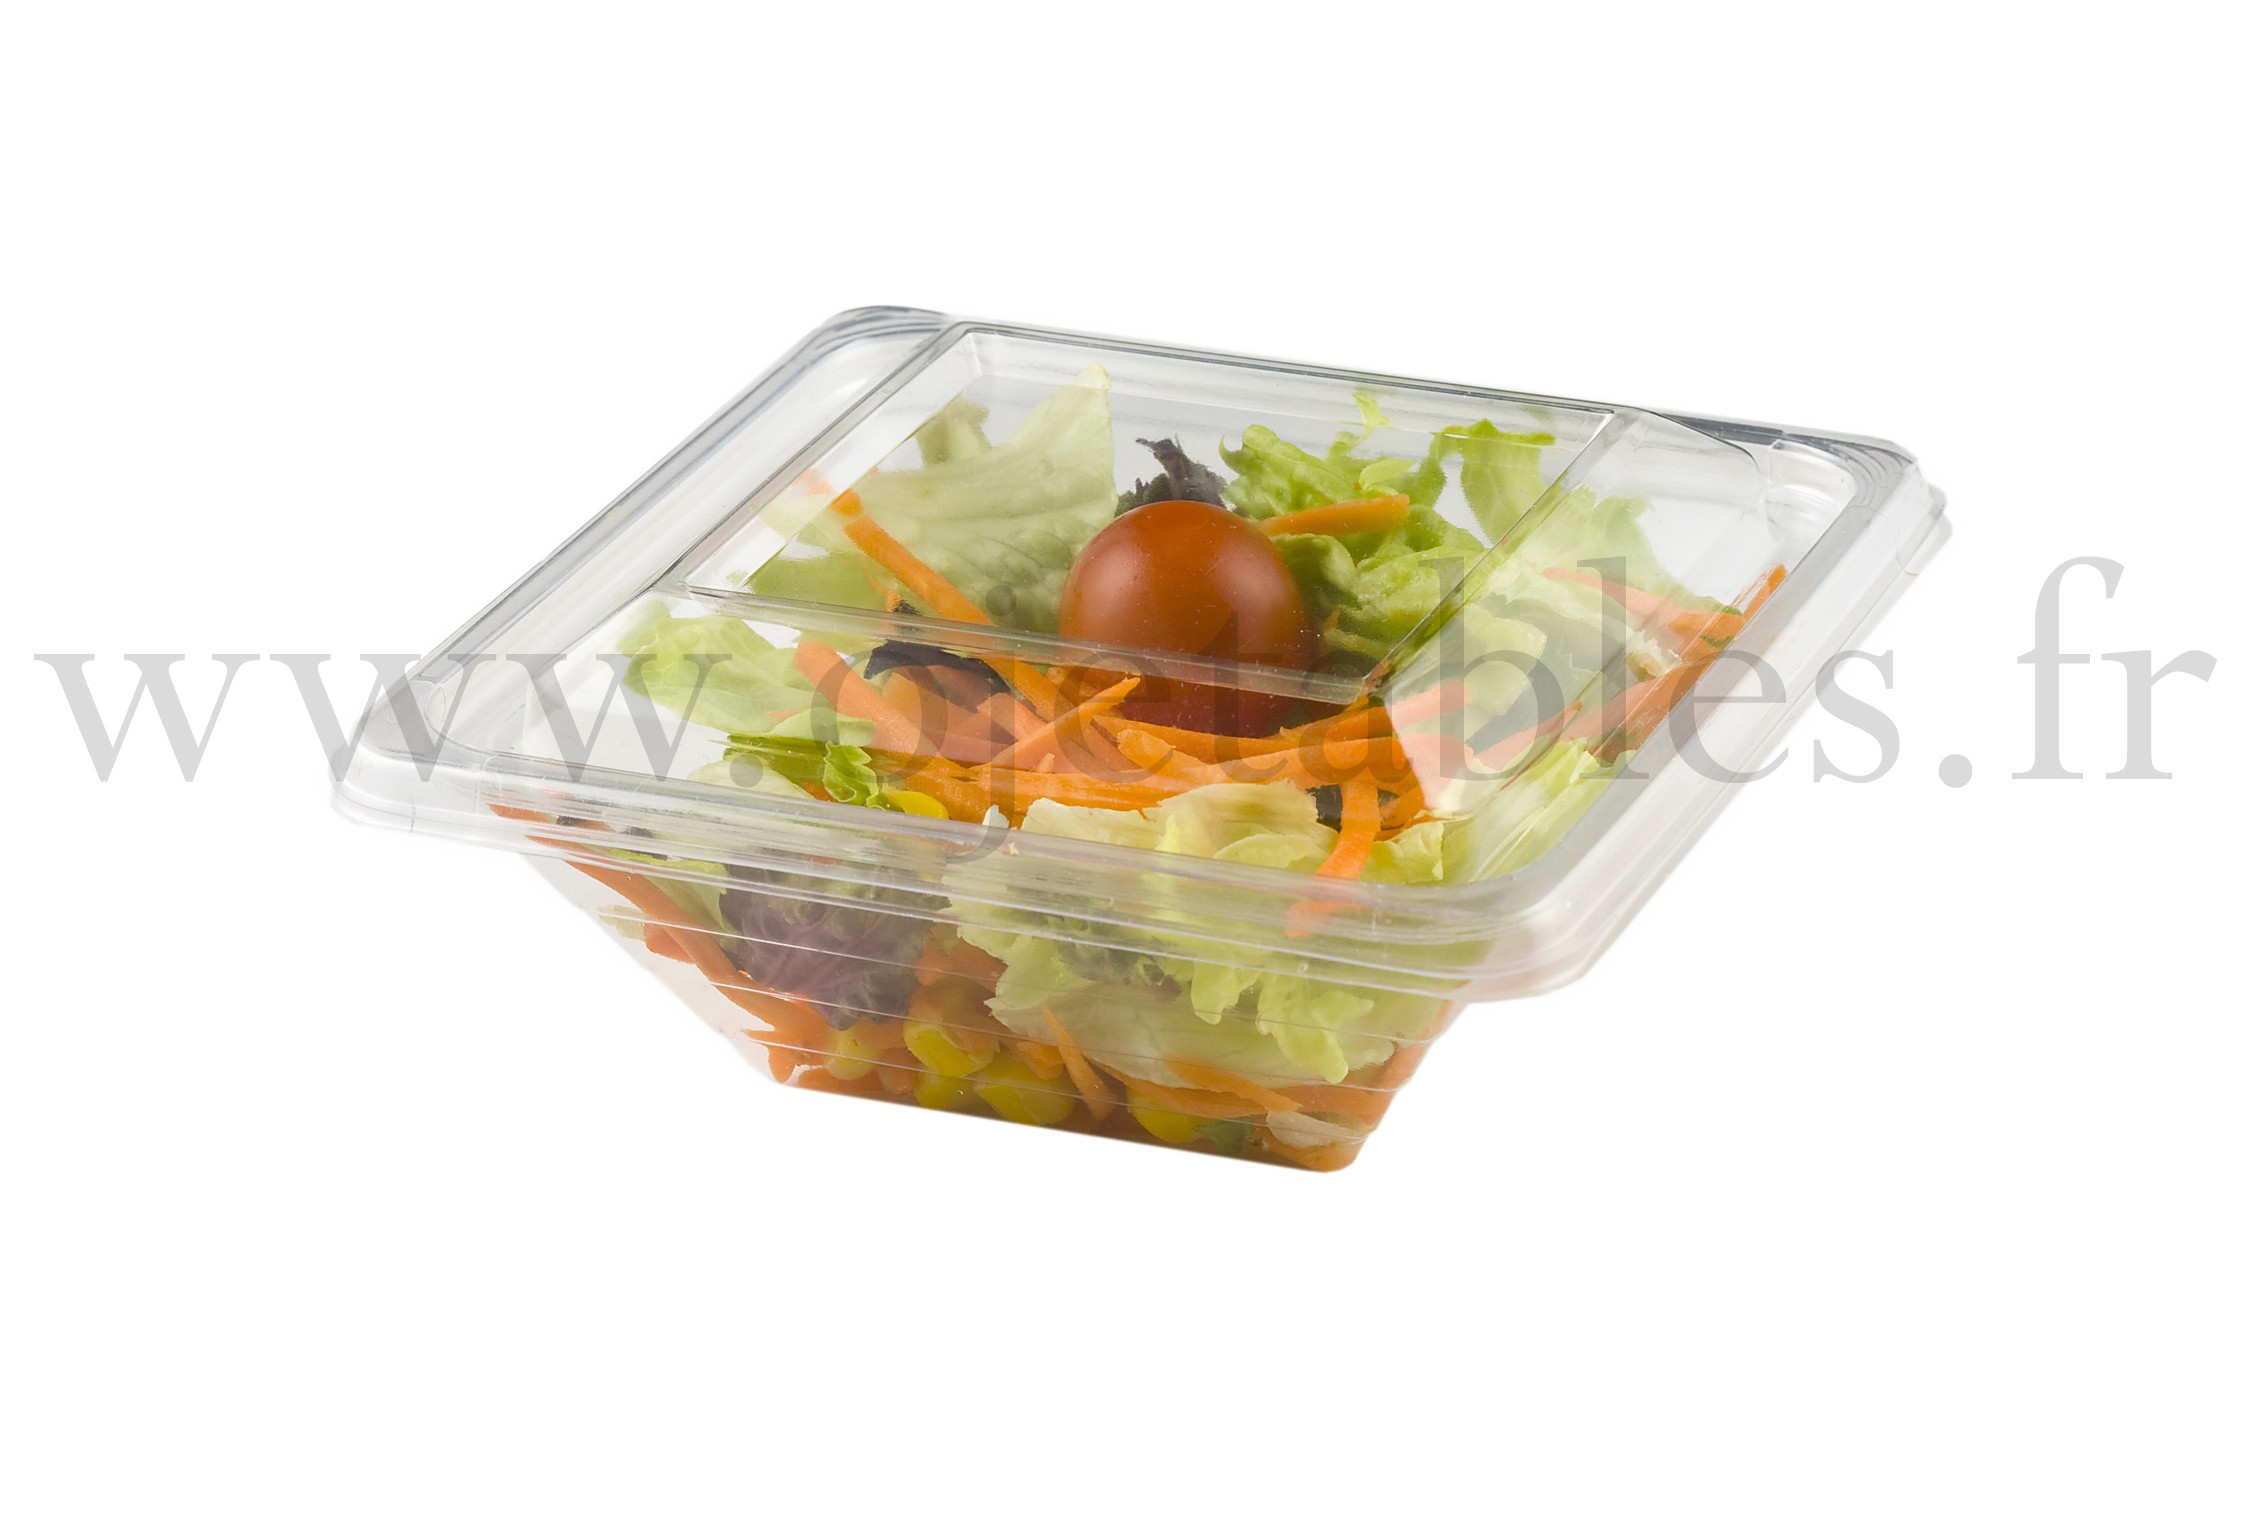 Barquette salade Pyramipack cristal 250ml + couvercle